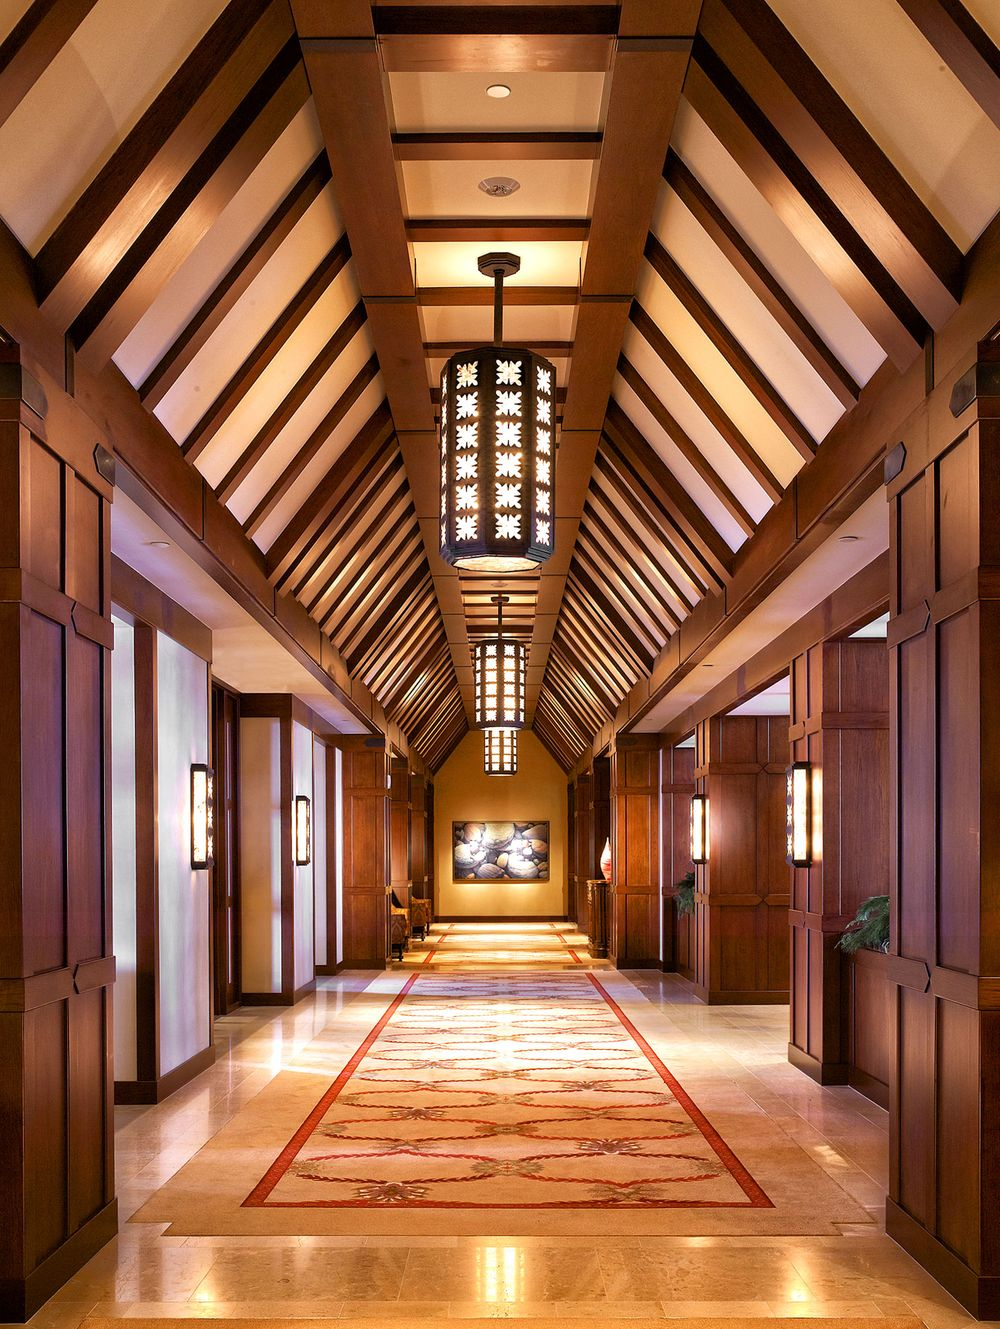 John-Sutton-Photography-Four Seasons Resort Entry